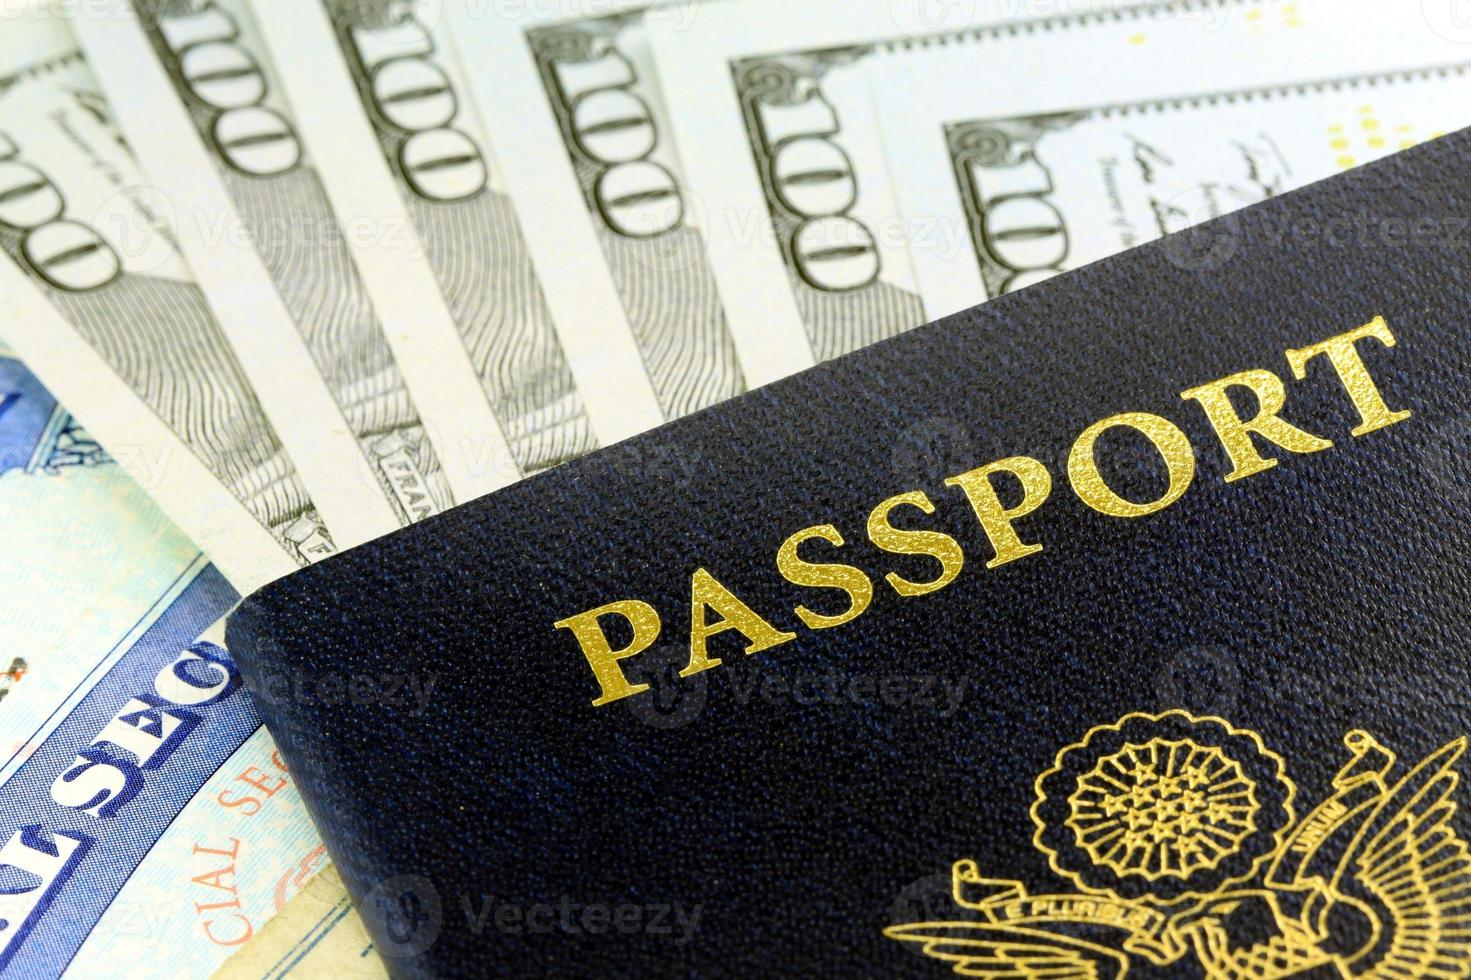 Travel Documents - USA Passport with American Currency photo